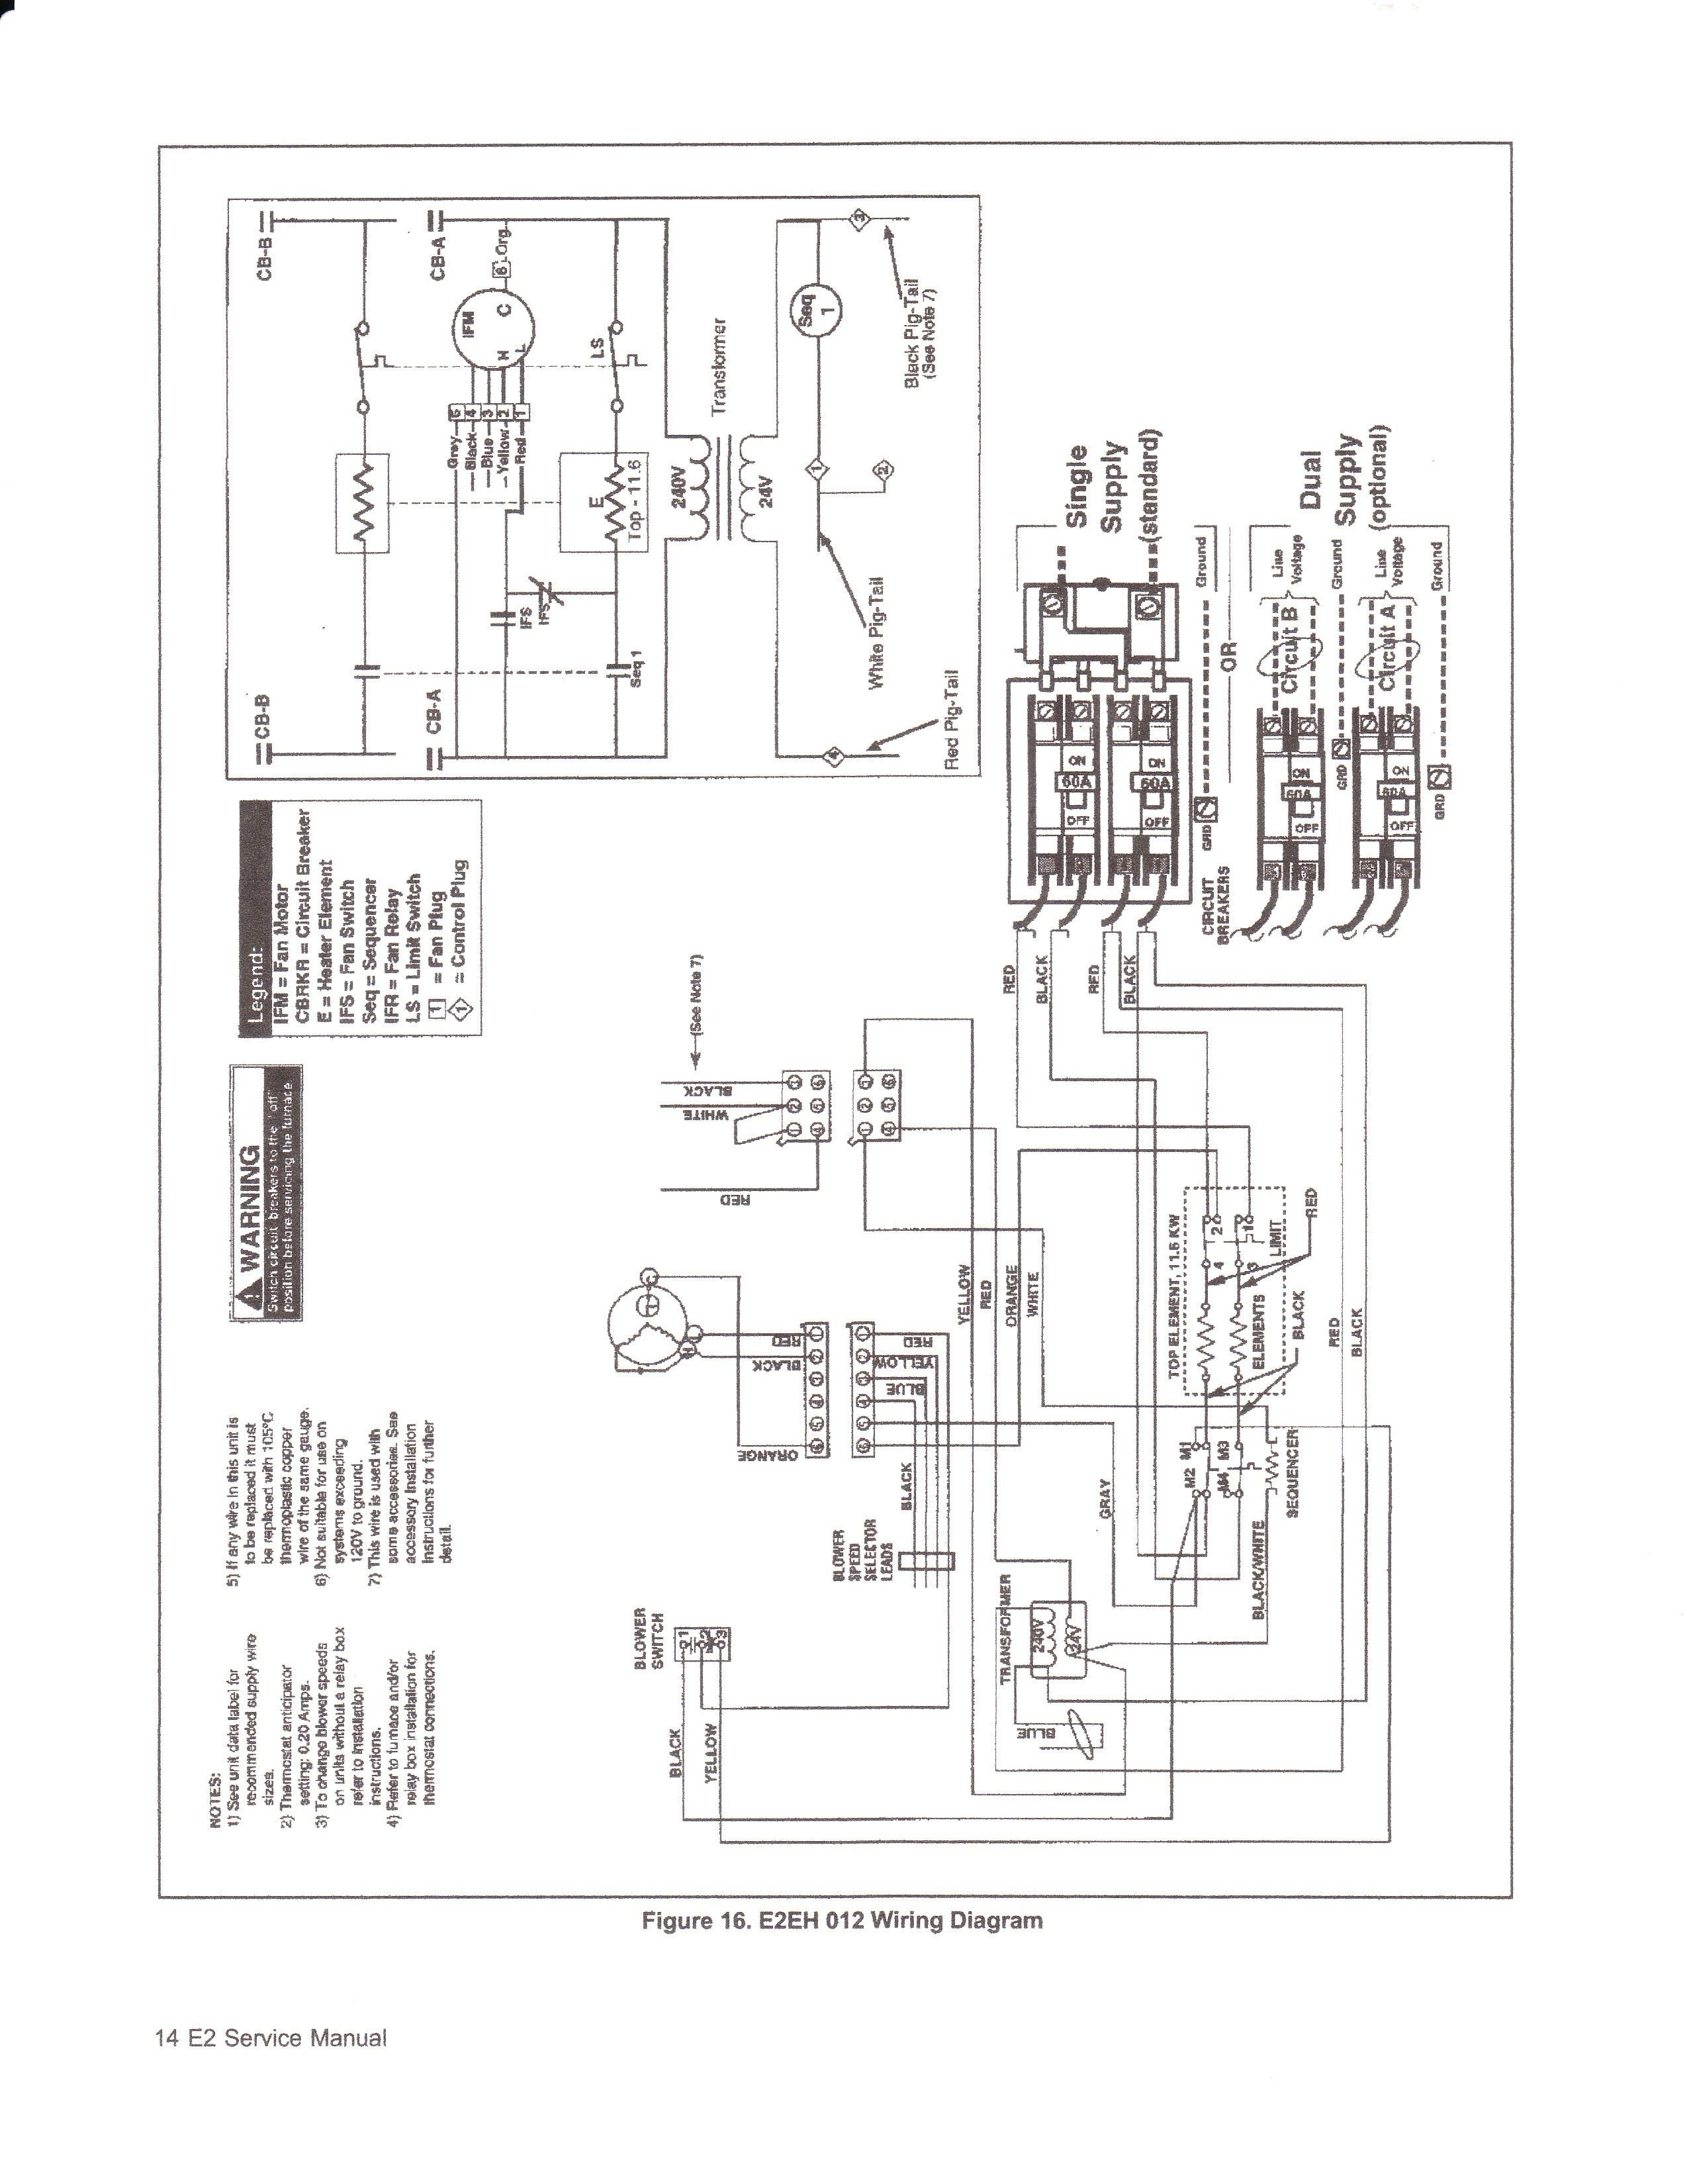 New Coleman Furnace Wiring Diagram In 2020 Electric Furnace Thermostat Wiring Furnace